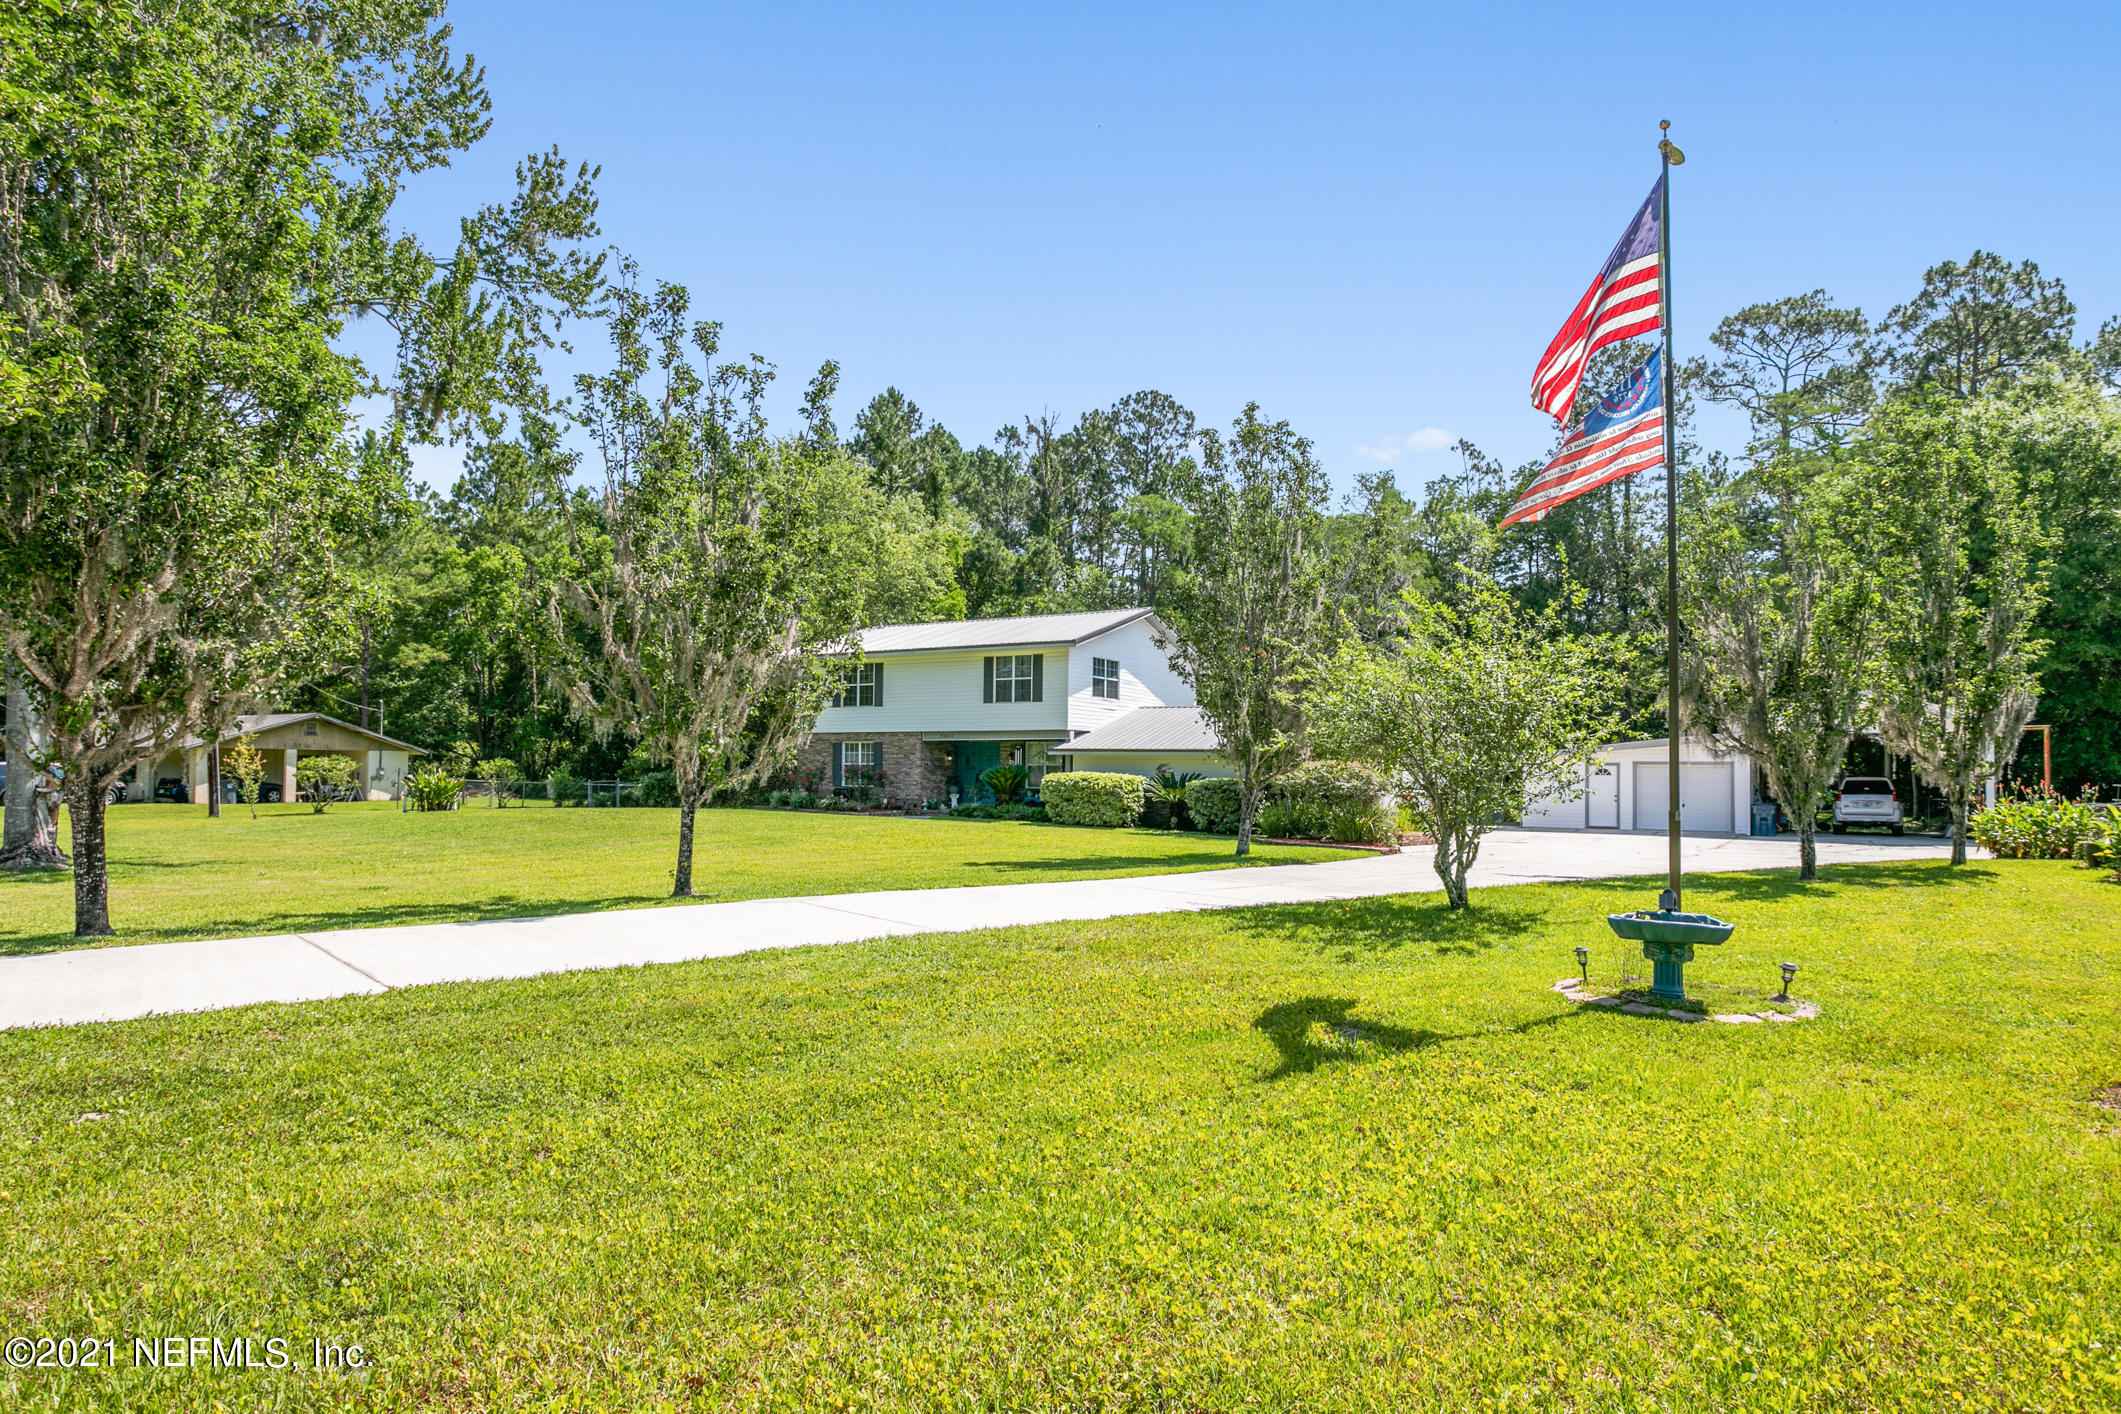 Here's the country charmer that you have been waiting for!  Enjoy privacy on your huge 1.06 acre lot with a beautiful pond.   Updated kitchen is open to the large living room with fireplace and half bath on the first floor.  Nice private office and formal dining room are just around the corner.  There are 3 large bedrooms (split) upstairs with large walk-in closets and 2 full baths.  Huge back deck with summer kitchen for summer party enjoyment.  Also, there is a detached garage which could be used for a man cave or workshop in addition to a large carport which can hold an RV.  There is also  another detached shed/pump house which could have many uses.  New metal roof and electrical panel plus complete rewire of detached garage in 2020.  Come see this beautiful home before it is gone Detached garage has 2 window AC/heat units.   Septic system recently pumped.  Rainsoft water system.  All air ducts cleaned 2019. Pond/dugout cleaned 2019.  New culvert put in 2019.